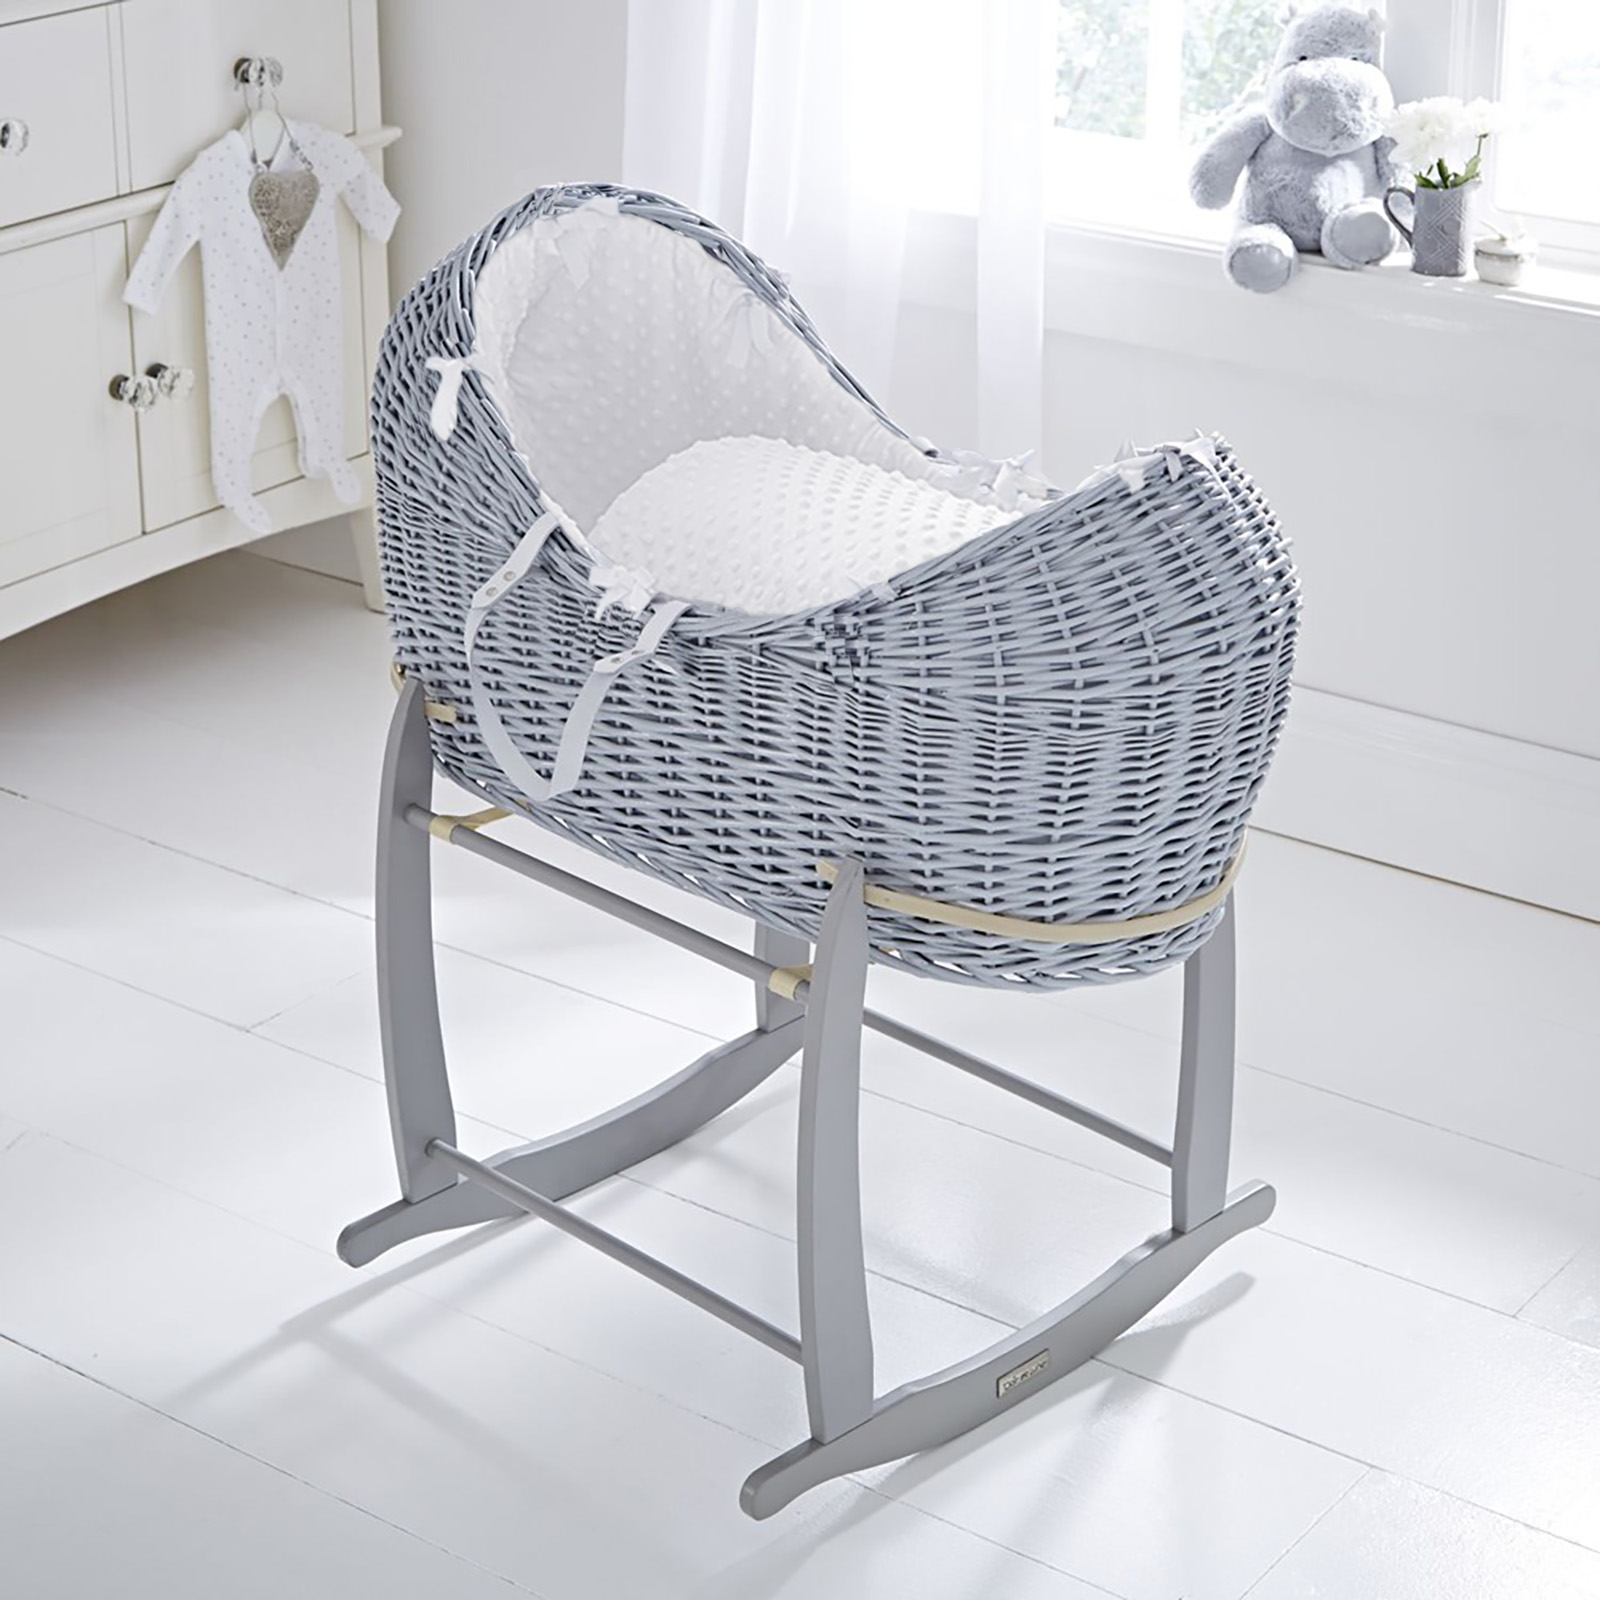 Baby Cots Next Clair De Lune Grey Wicker Noah Pod Deluxe Rocking Stand